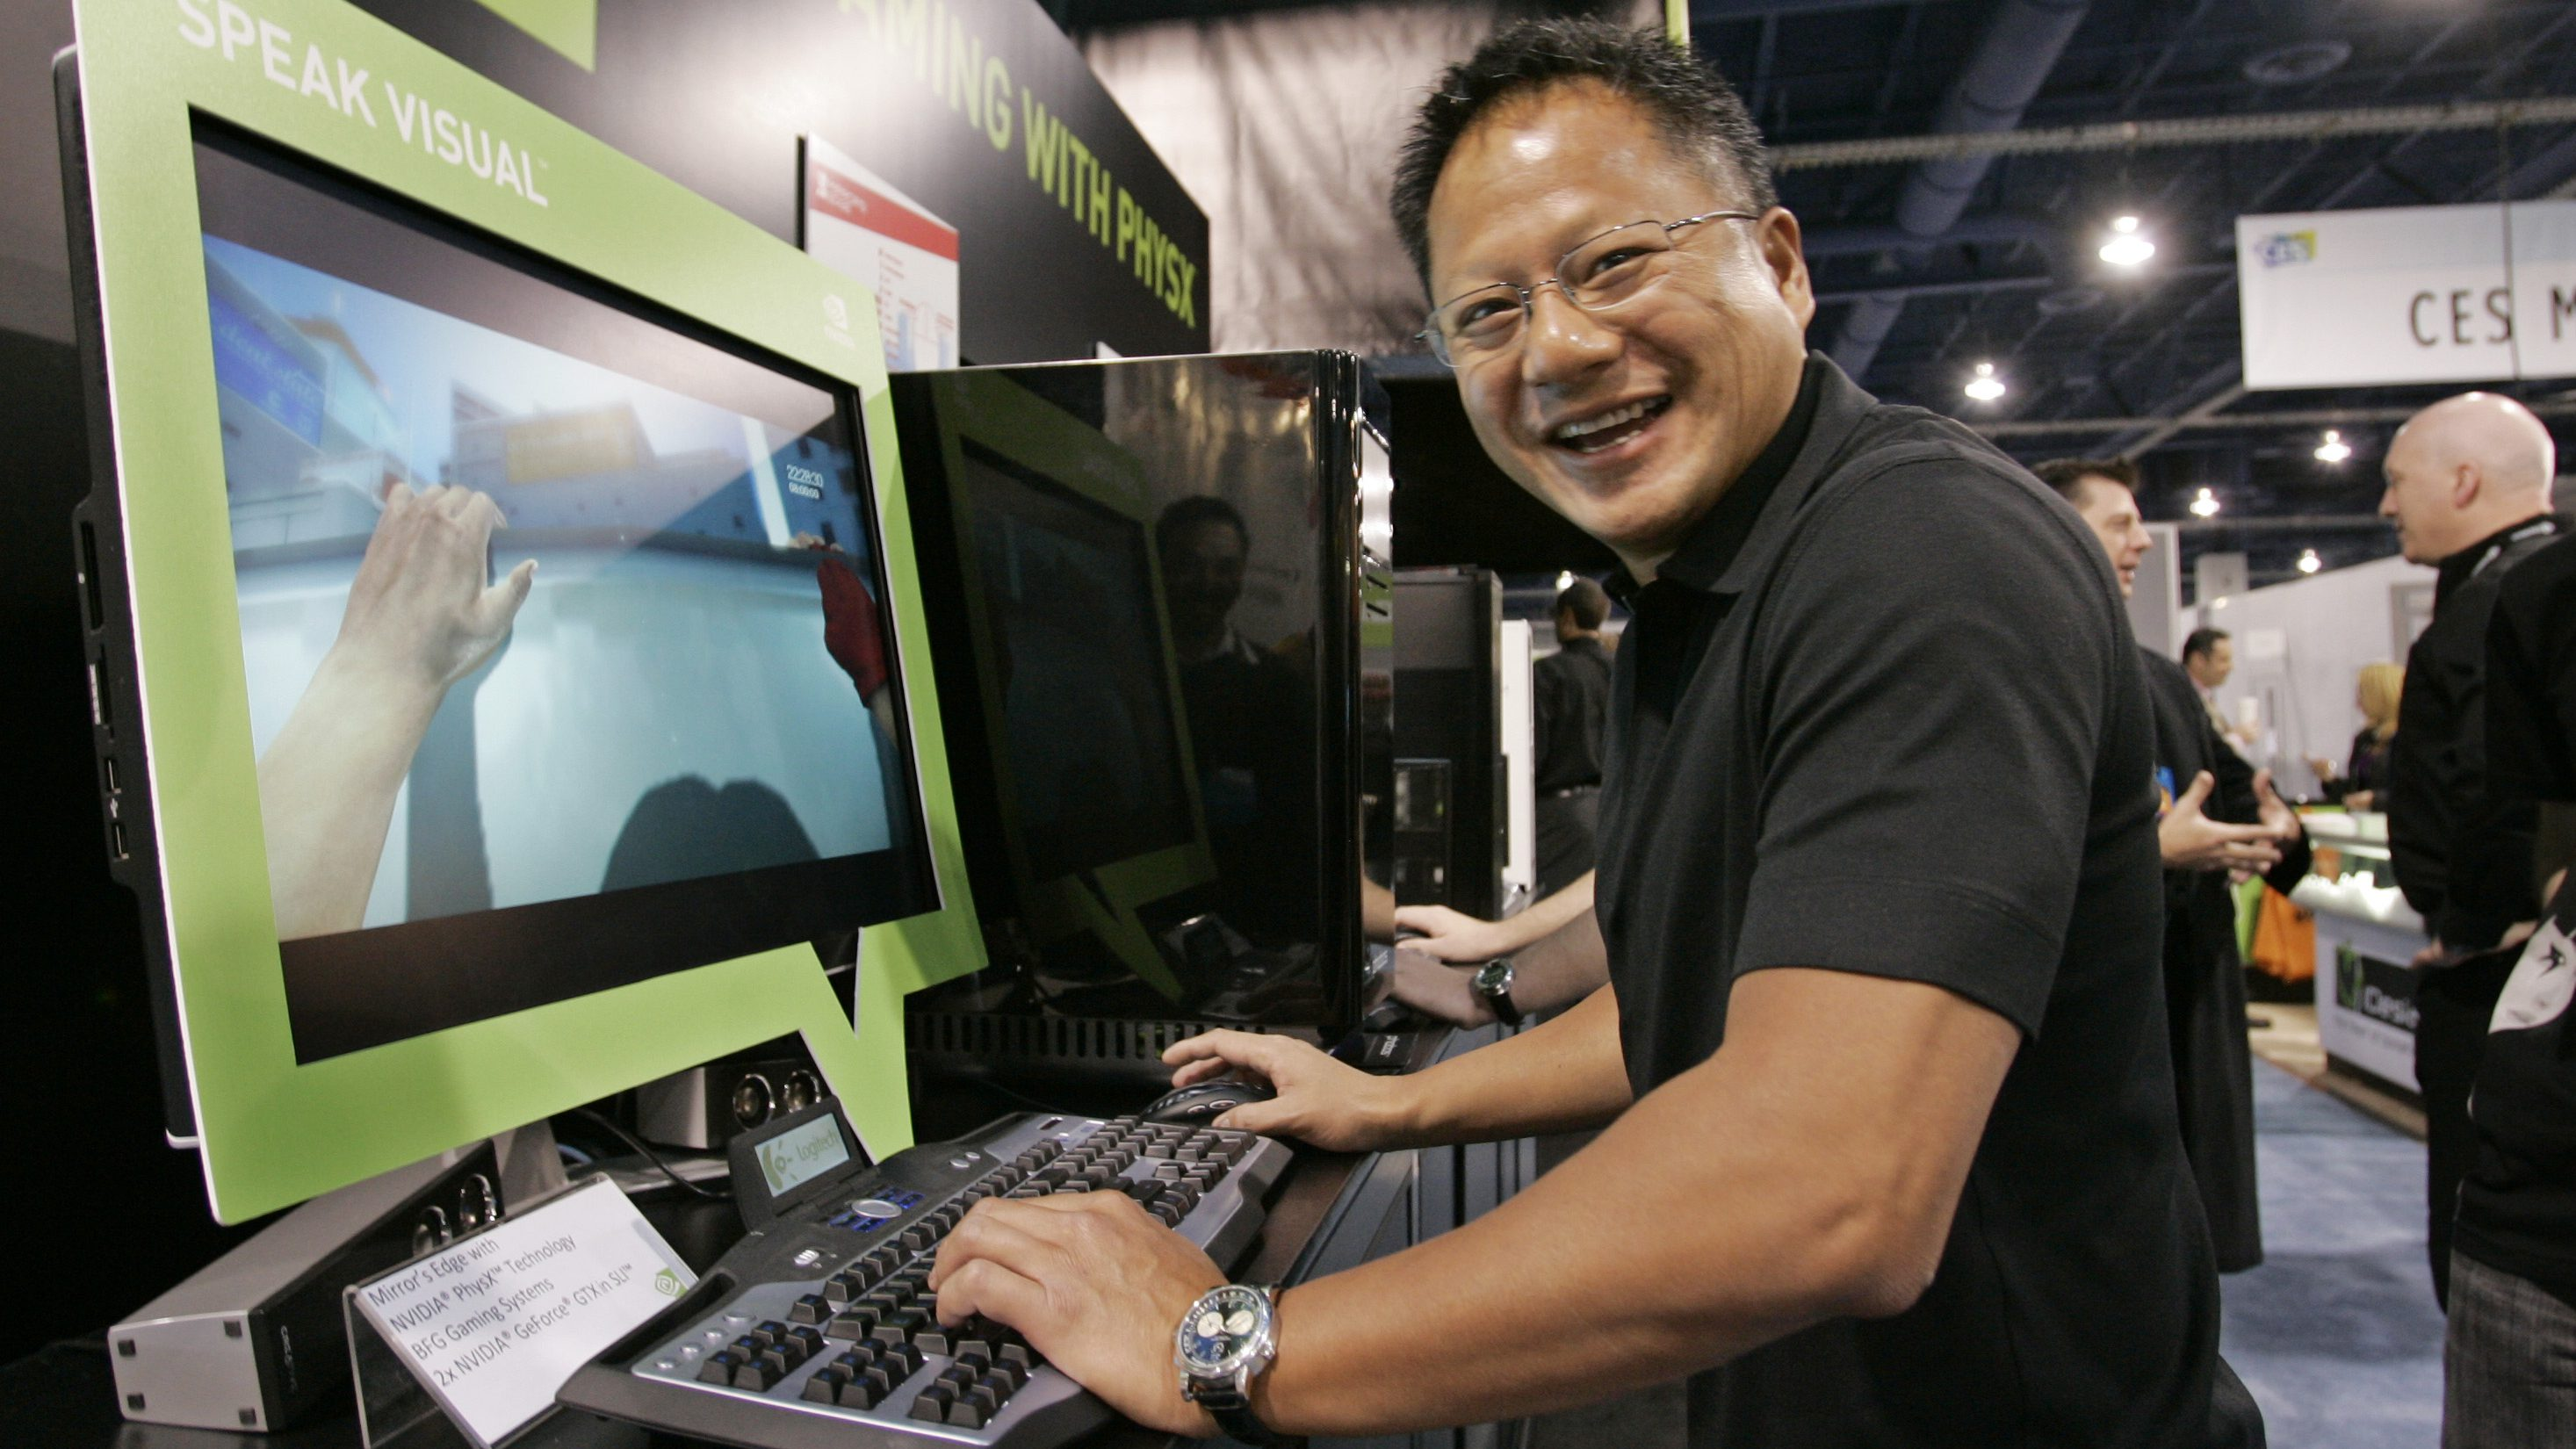 Nvidia CEO Jen-Hsun Huang plays with a game using Nvidia's Physx technology for gaming, at the International Consumer Electronics Show in Las Vegas, Thursday, Jan. 8, 2009. Nvidia made the graphics chip technology Physx that helps enhance gaming. (AP Photo/Paul Sakuma)